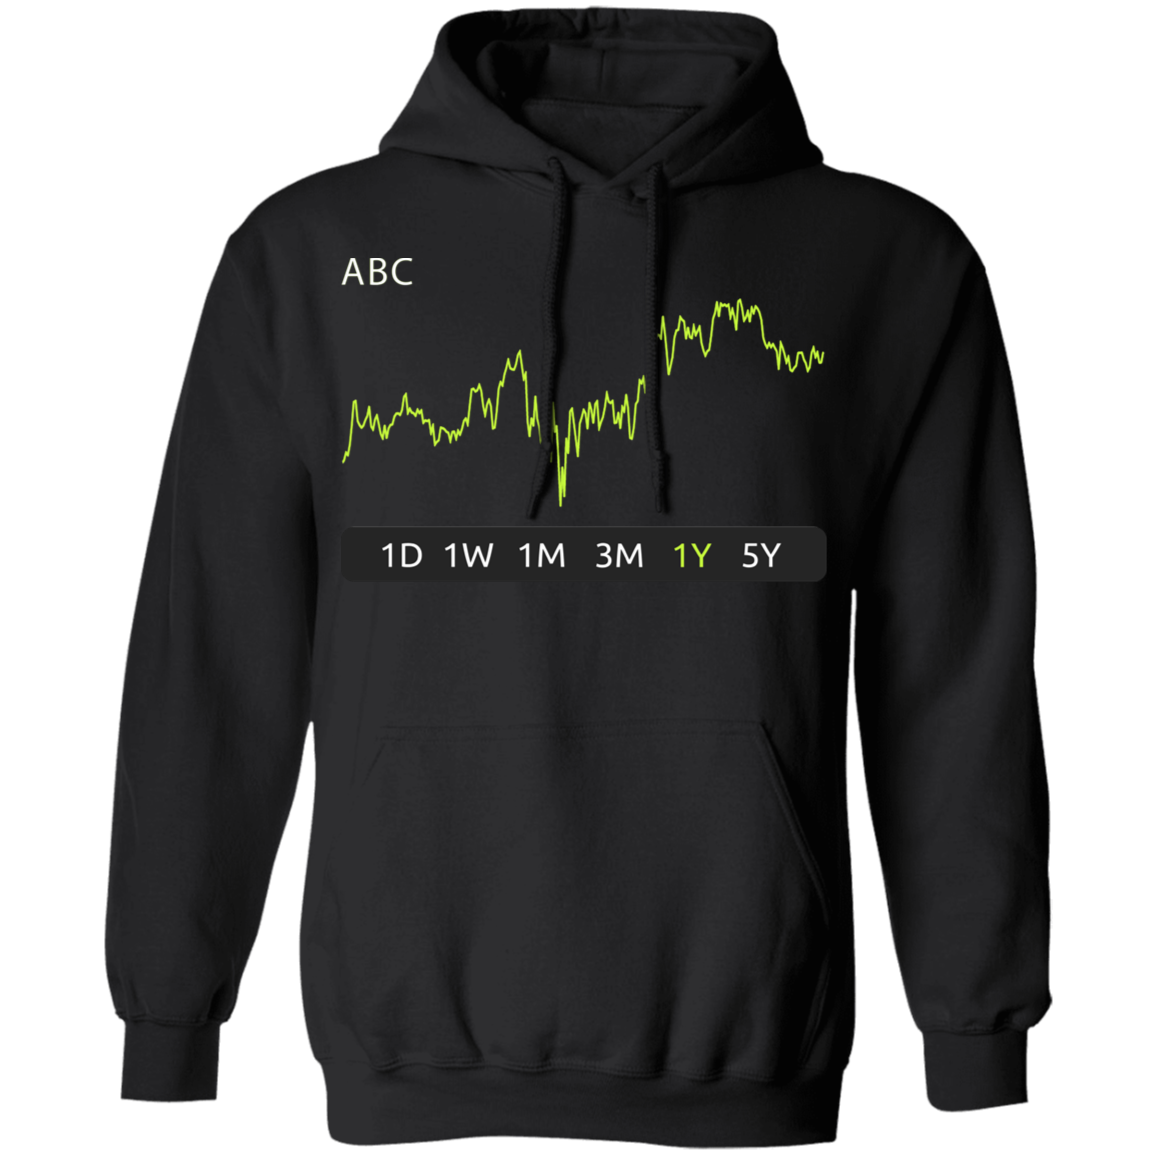 ABC Stock 1y Pullover Hoodie